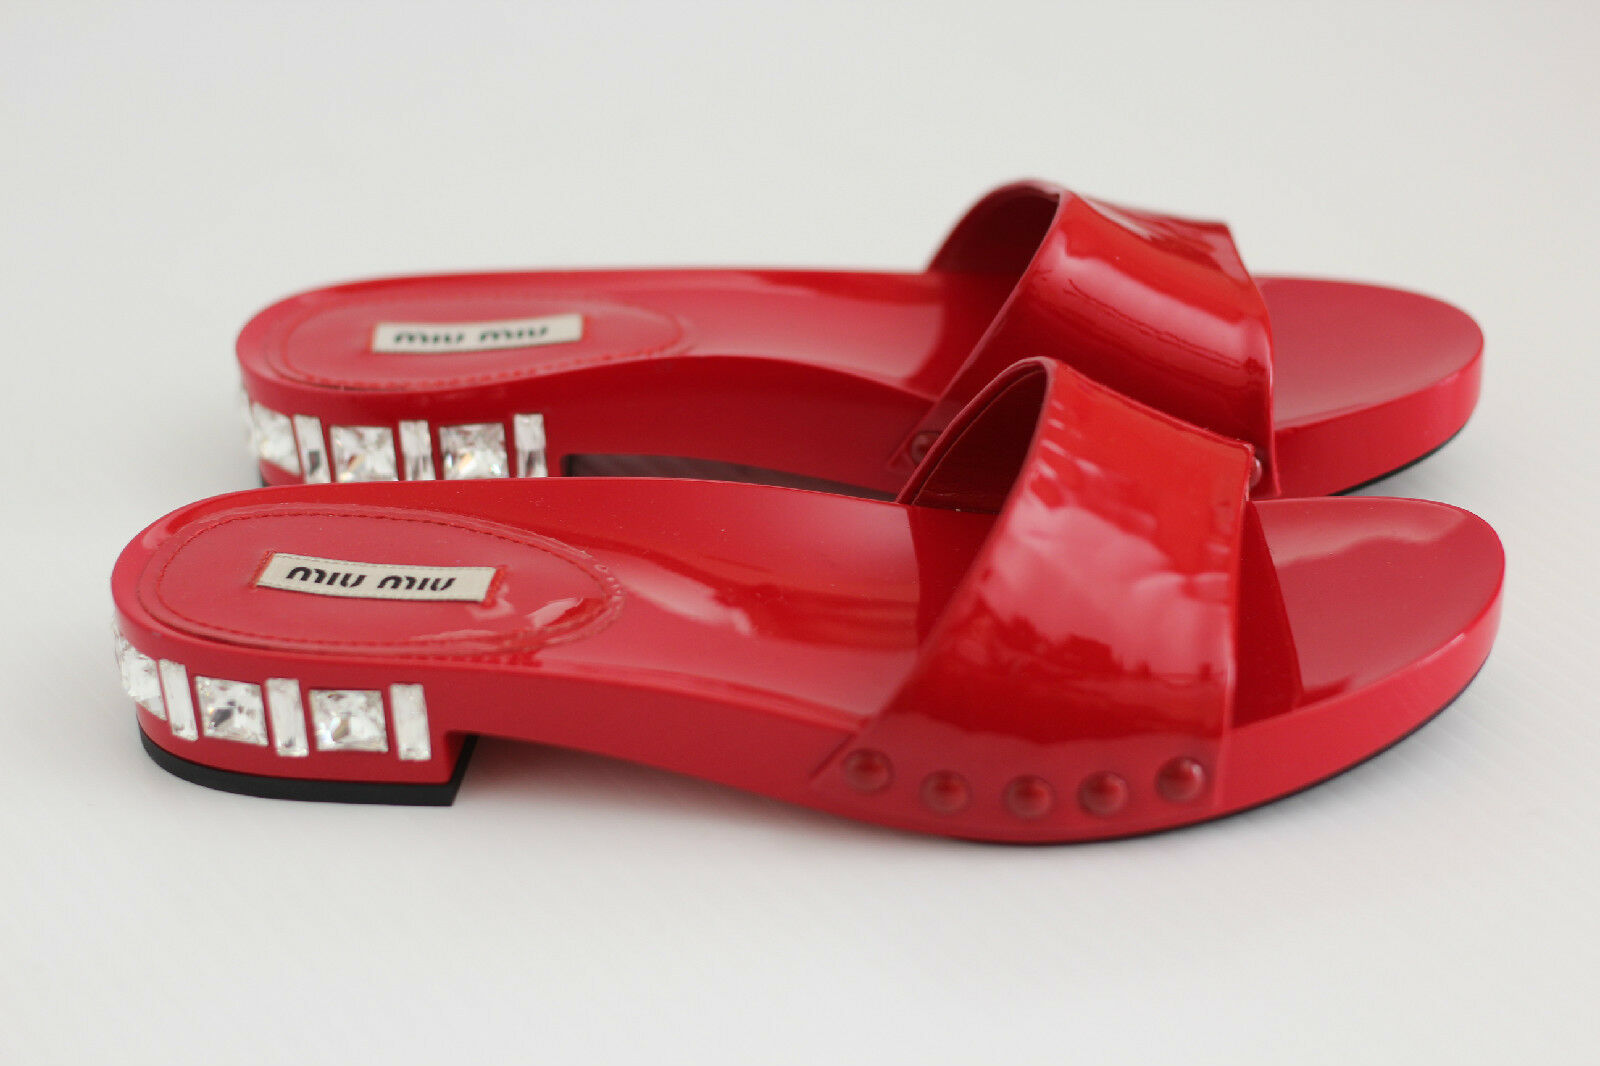 Miu Miu Jeweled Patent Leather Sandal Slide Swarovski Rhinestone Red 6.5US (X27)